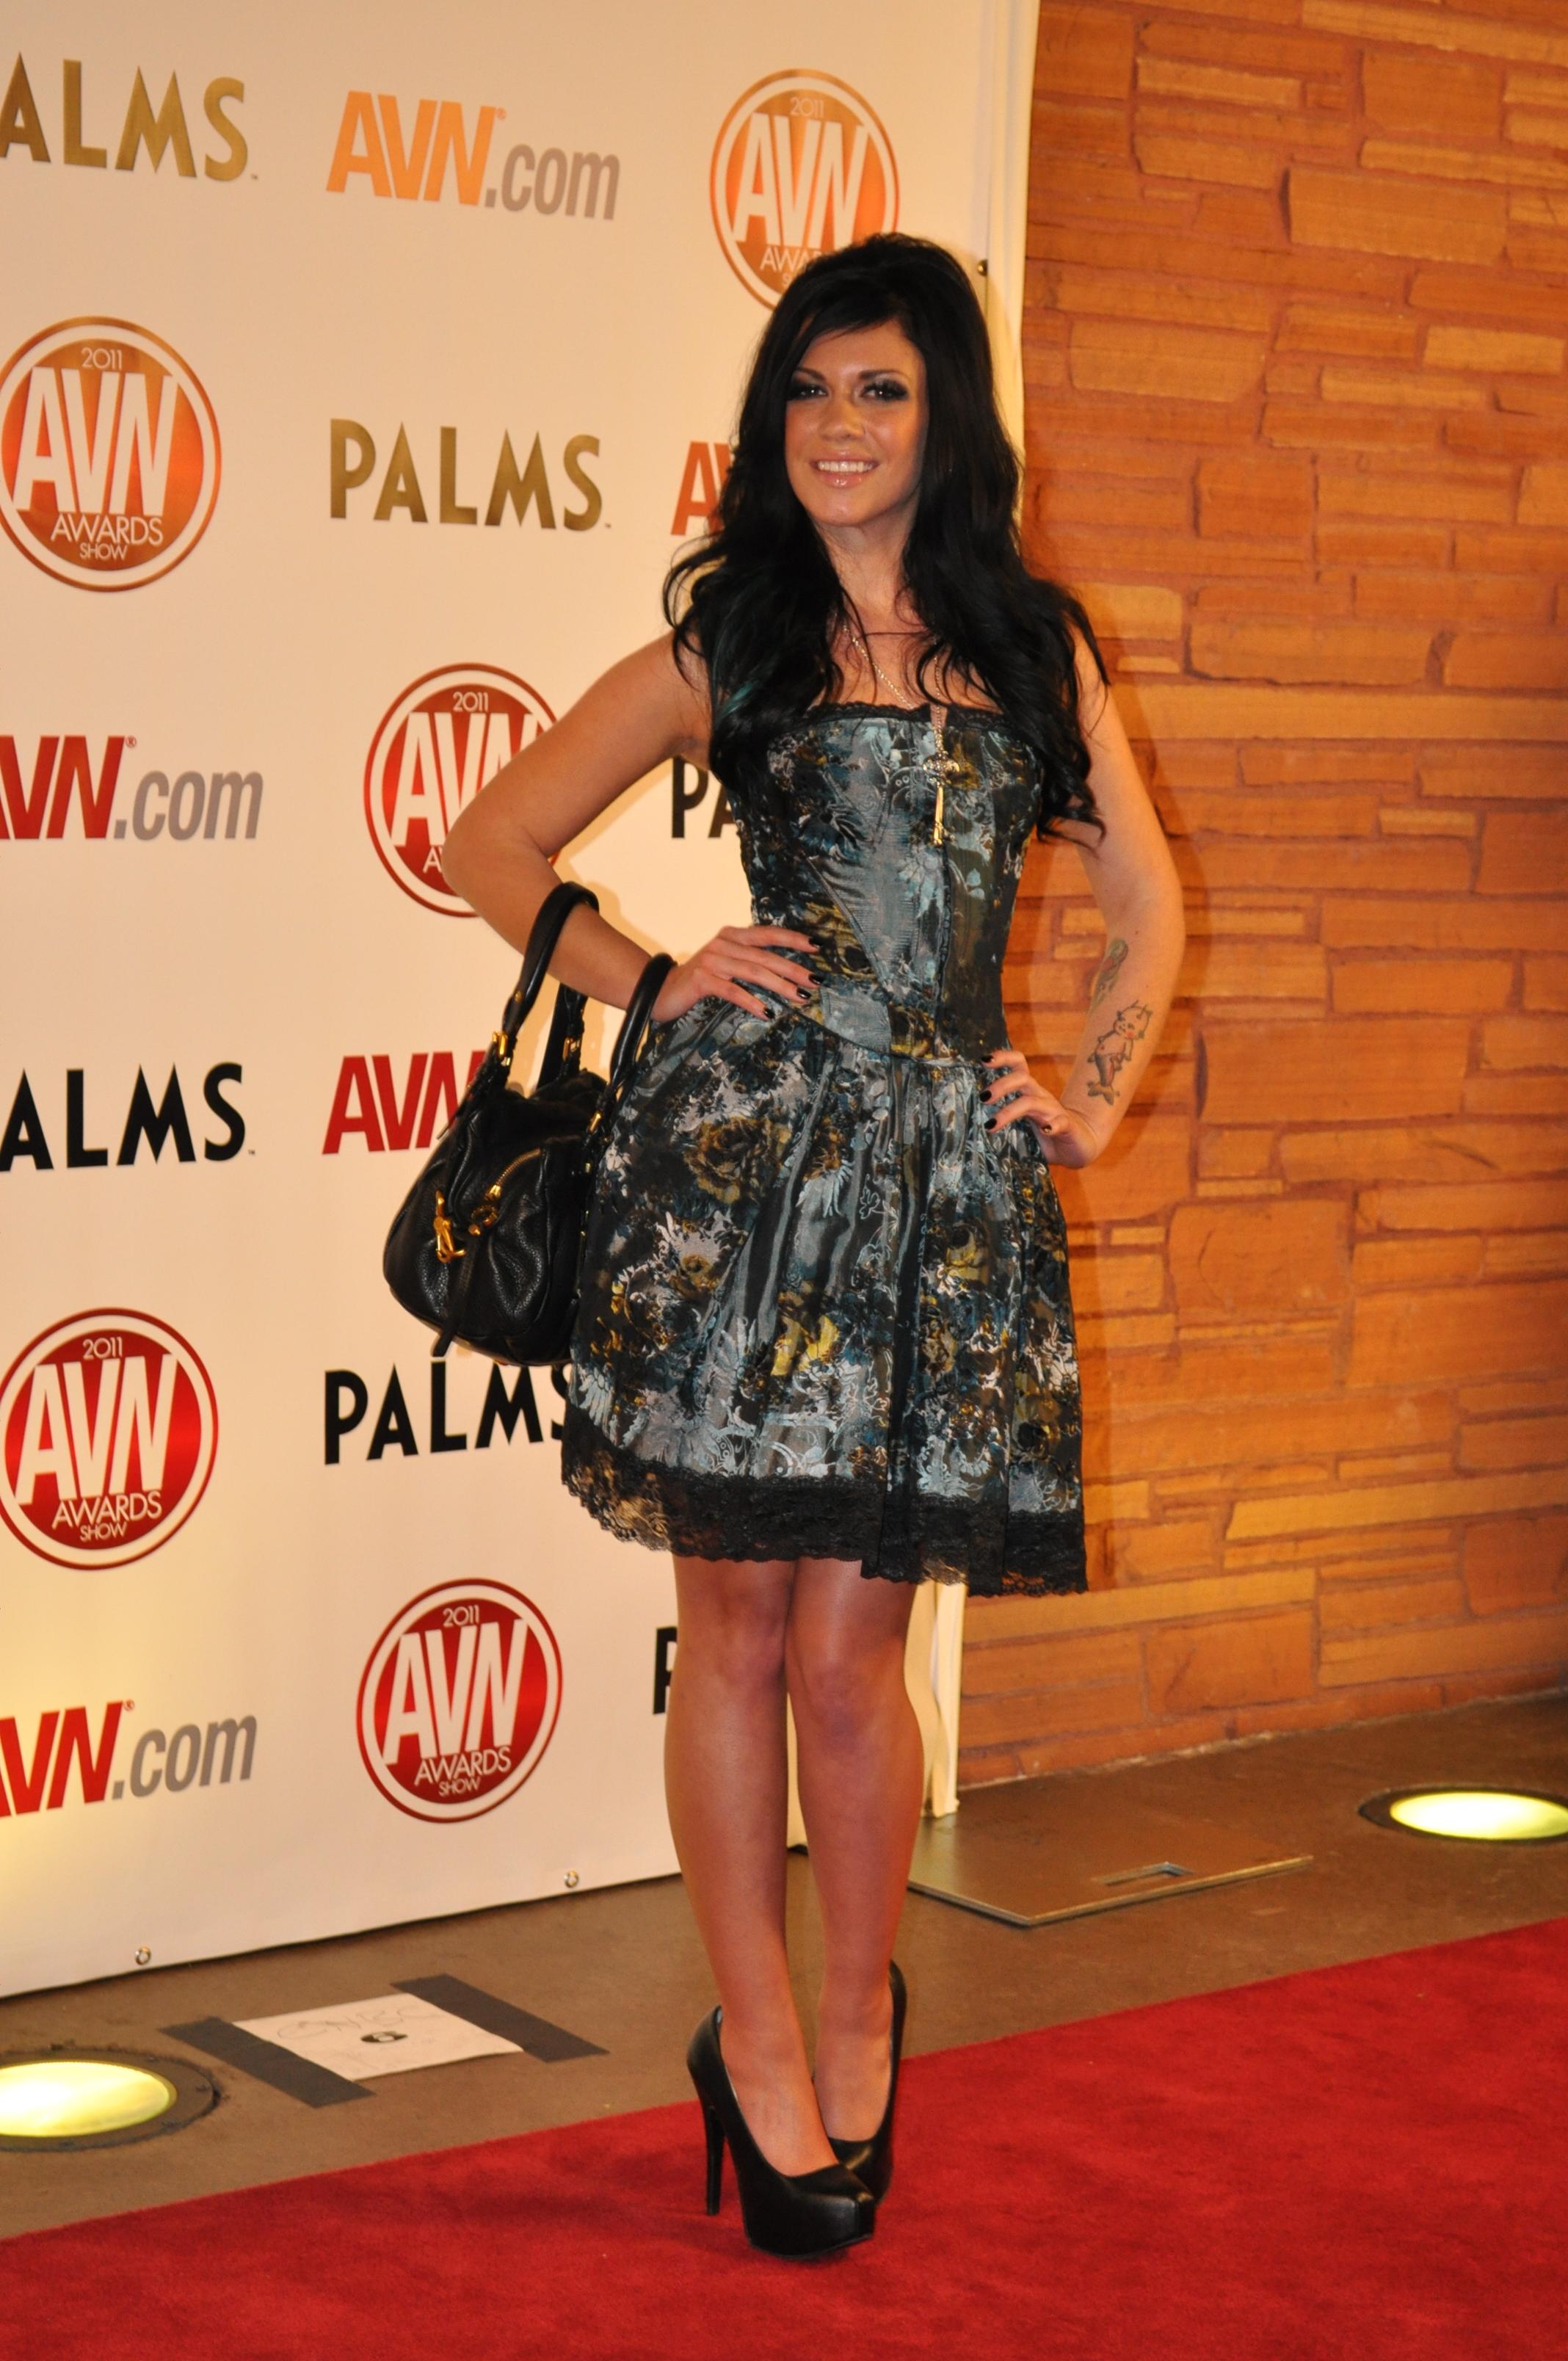 Andy_San_Dimas_at_AVN_Awards_2011_2